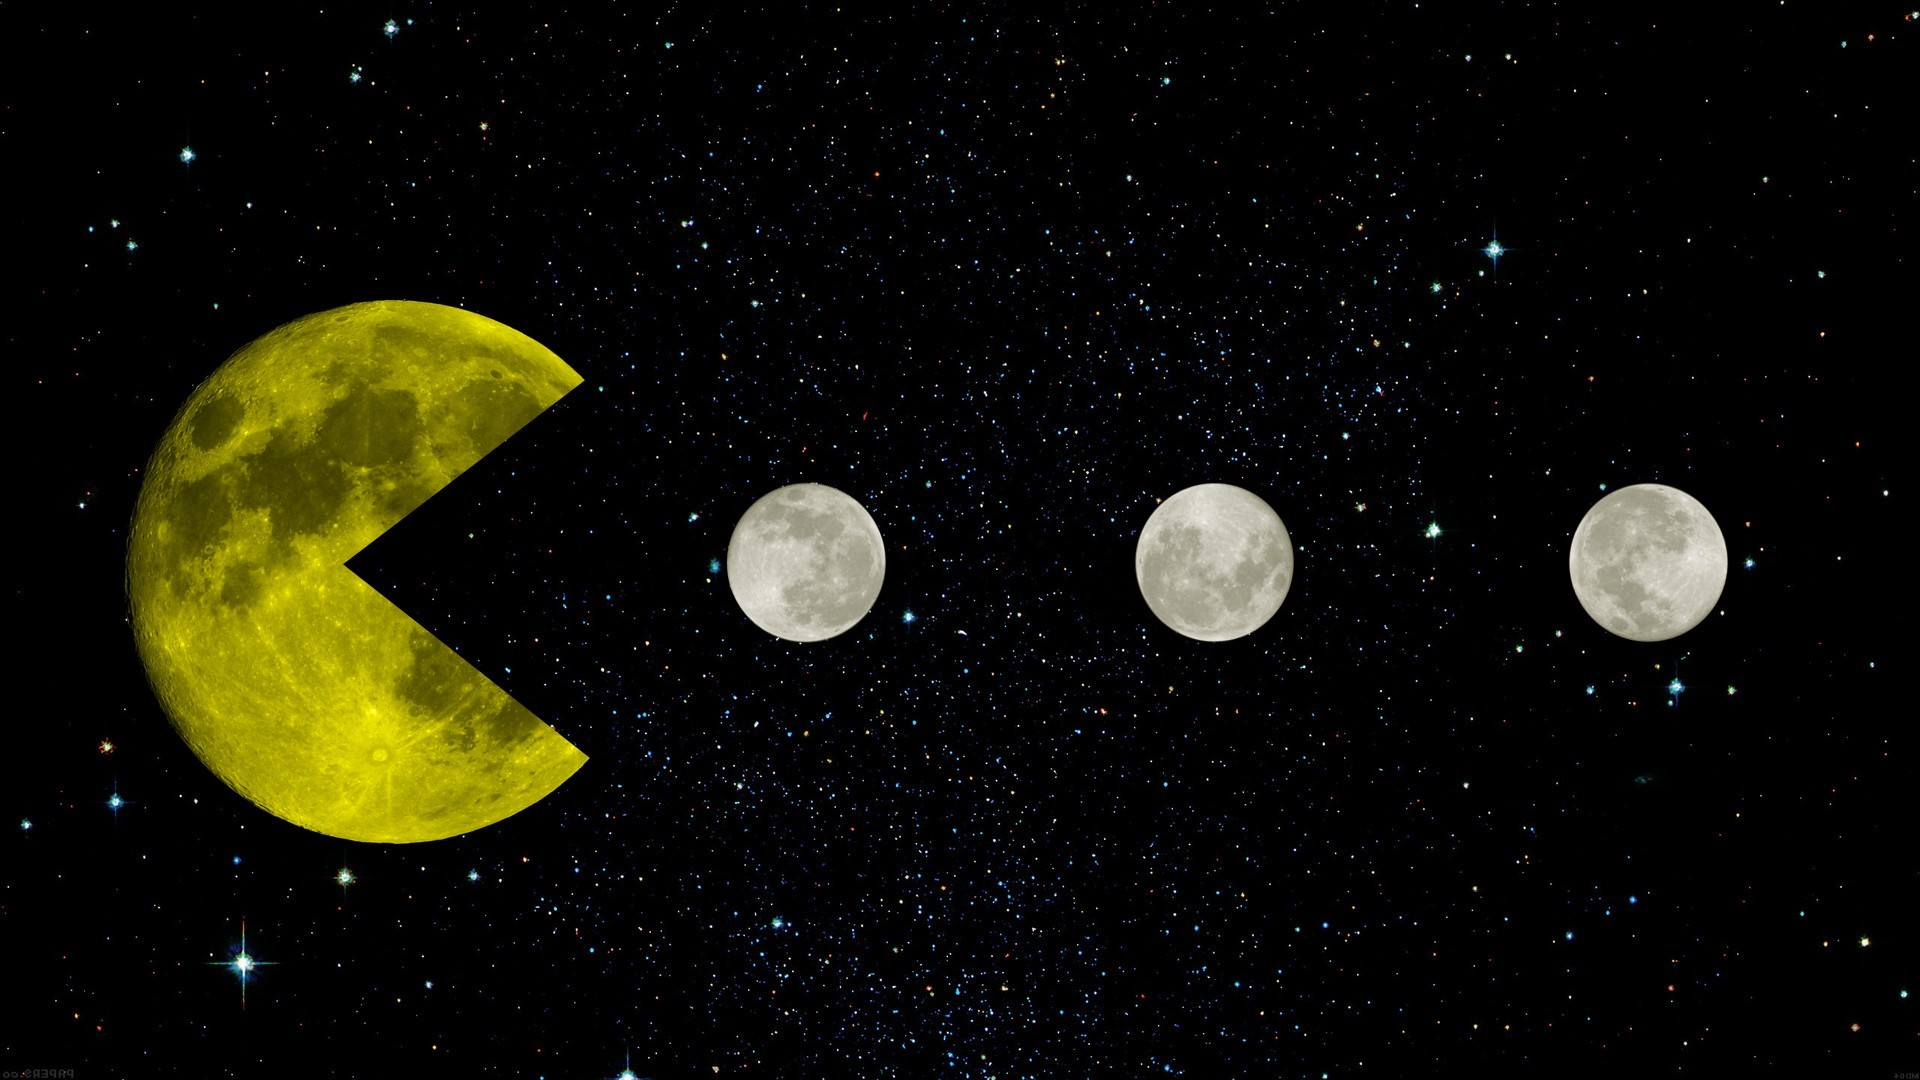 1920x1080 Pac Man, Yellow, Space, Moon, Moon, Stars, Black, Retro Games, Creative  Design, Infinity Wallpapers HD / Desktop and Mobile Backgrounds